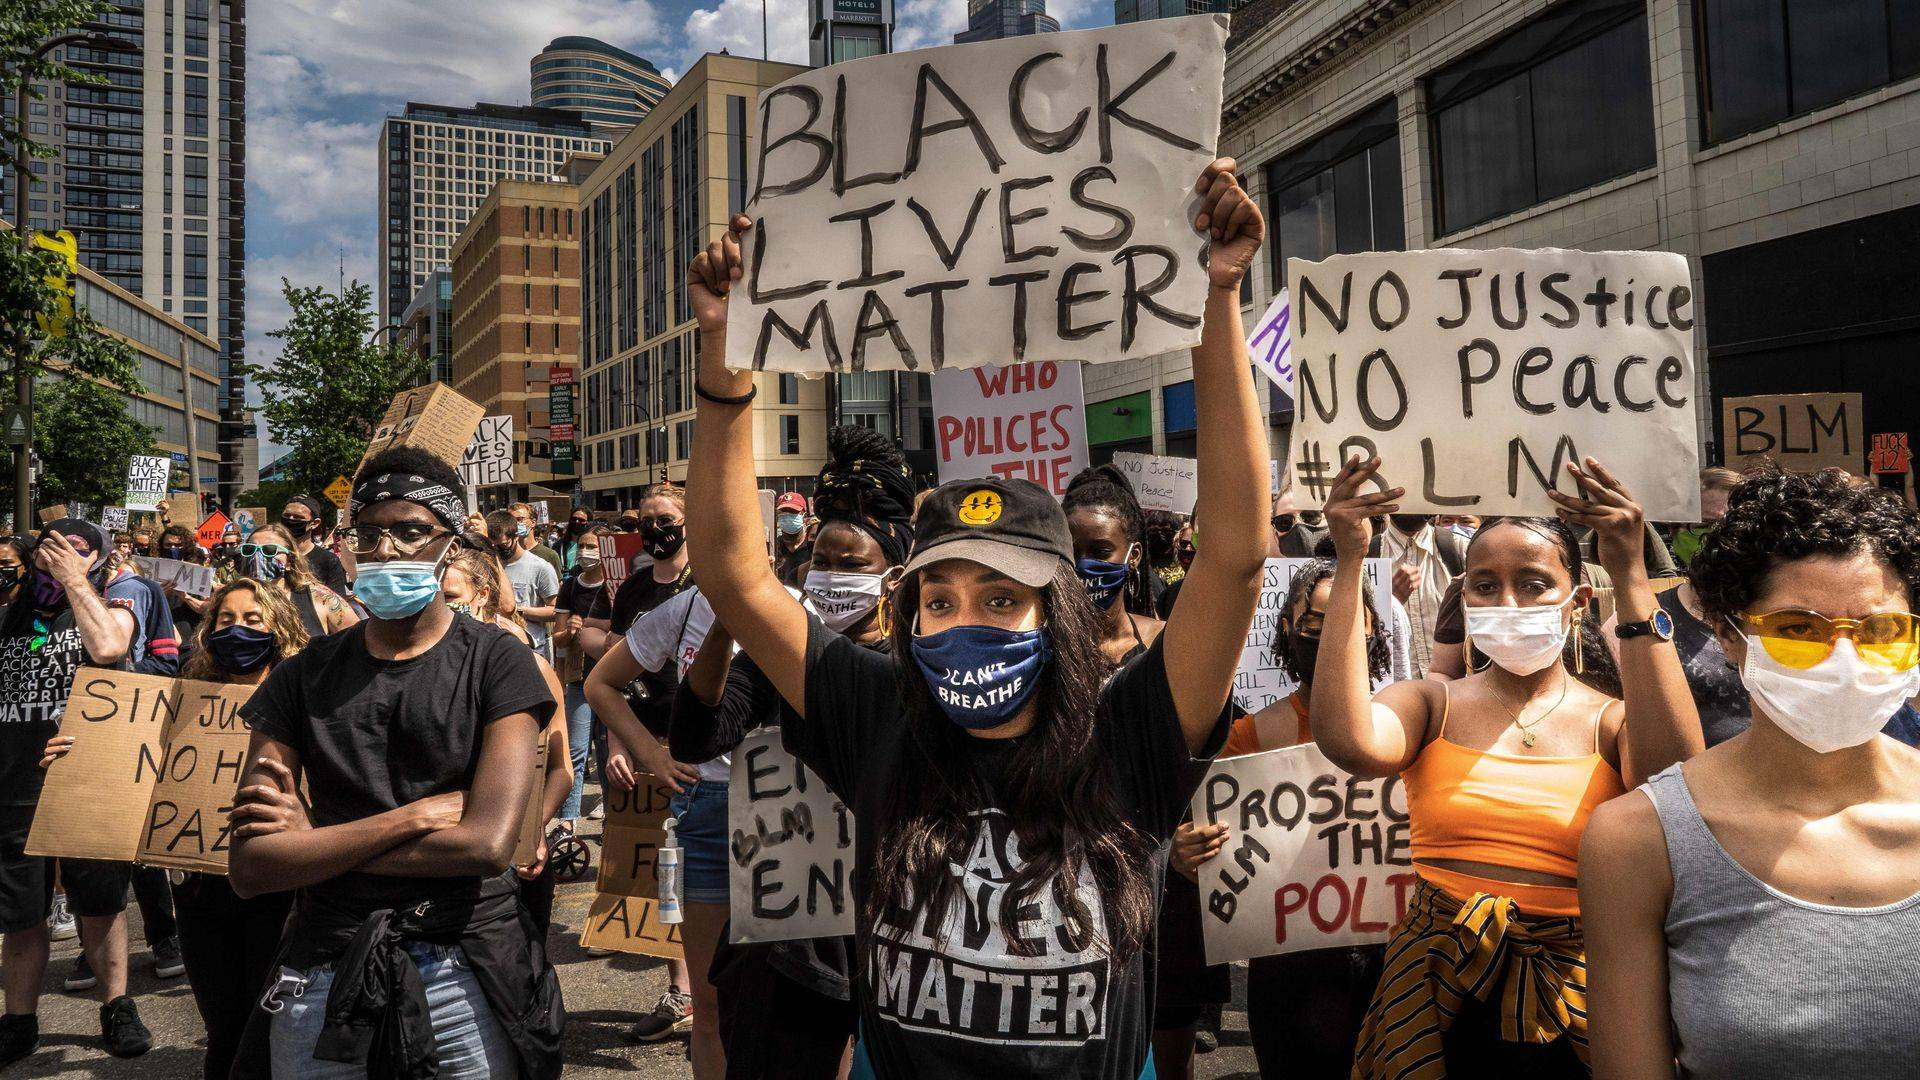 blm, black lives matter, take action now, fight for racial justice